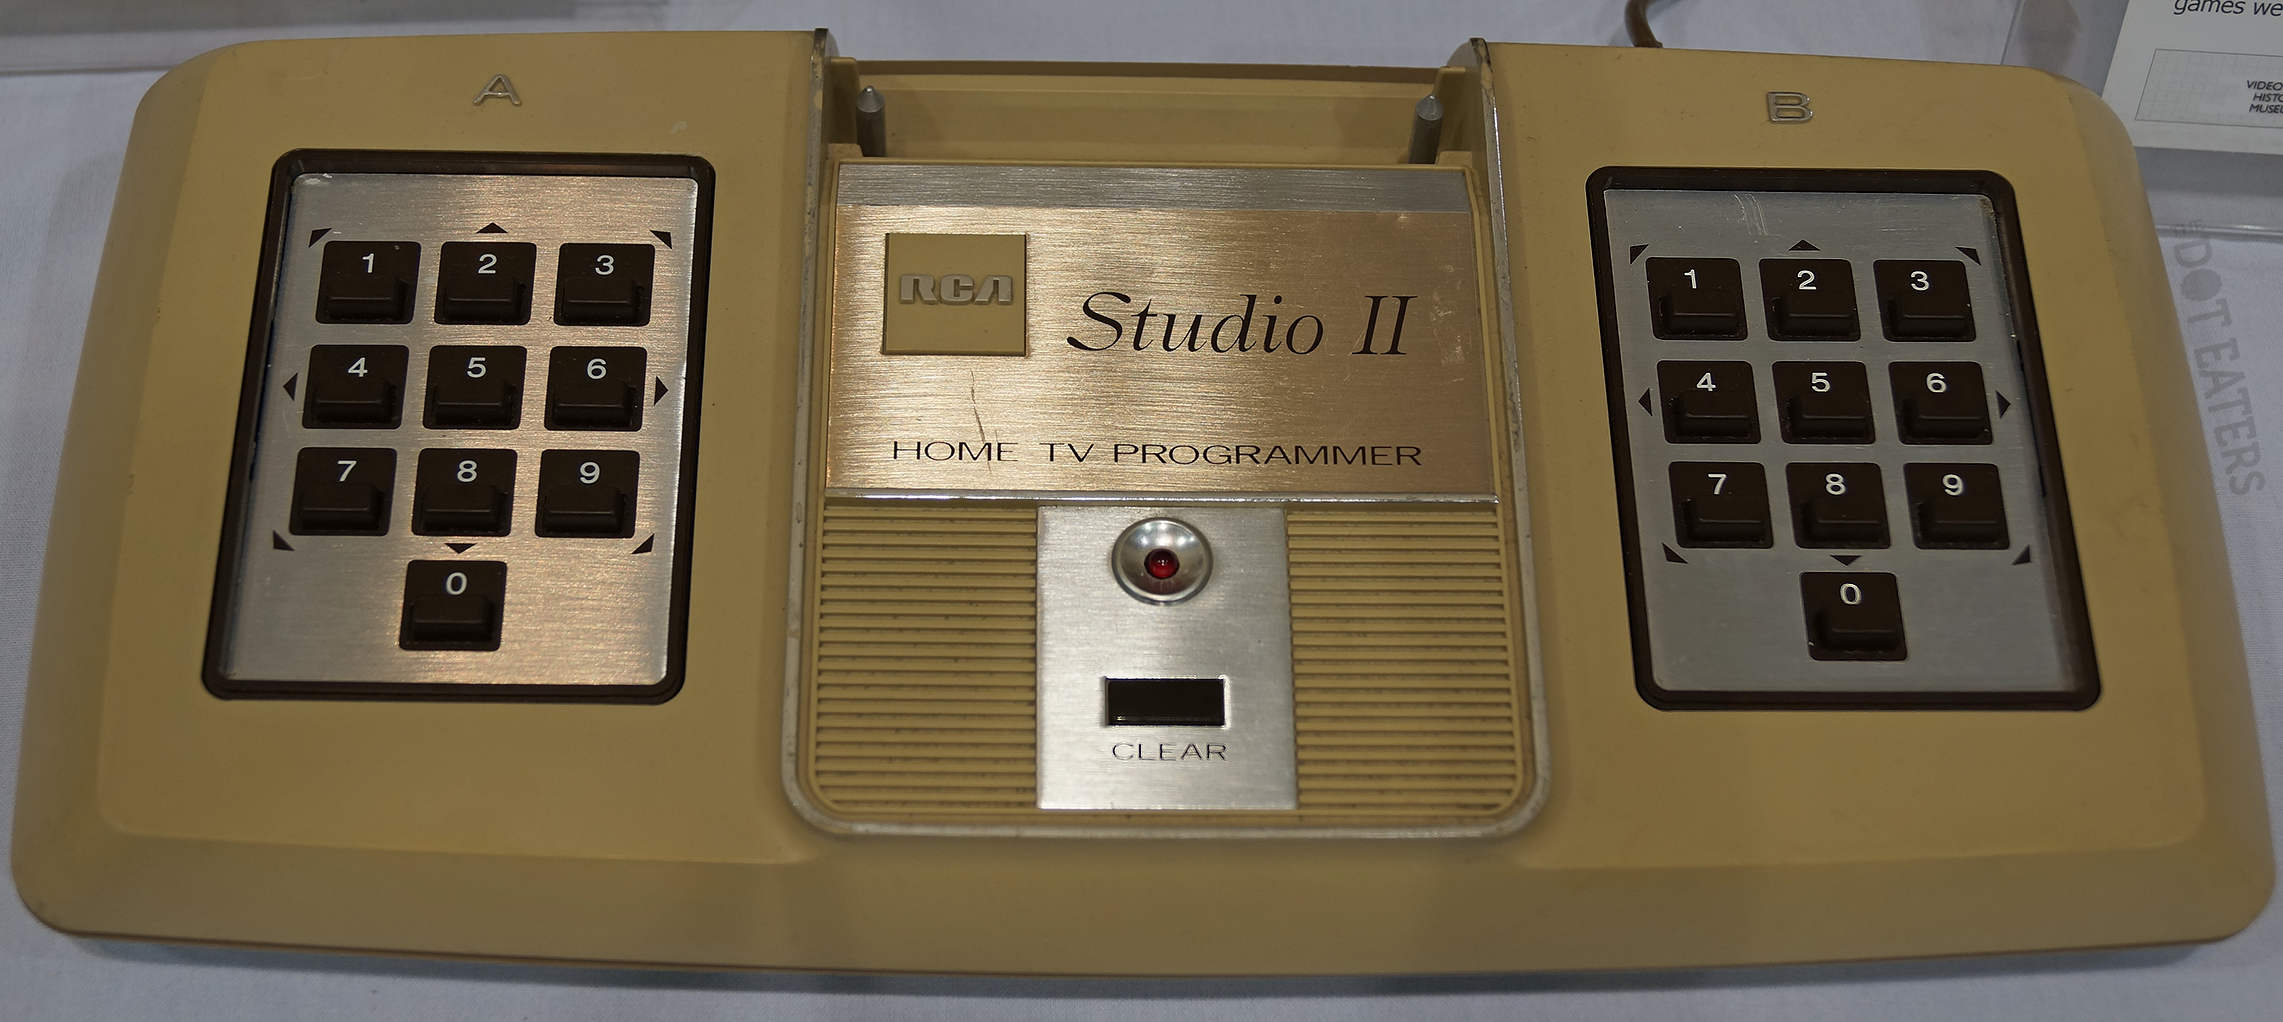 Image of the Studio II, a home video game system by RCA 1976